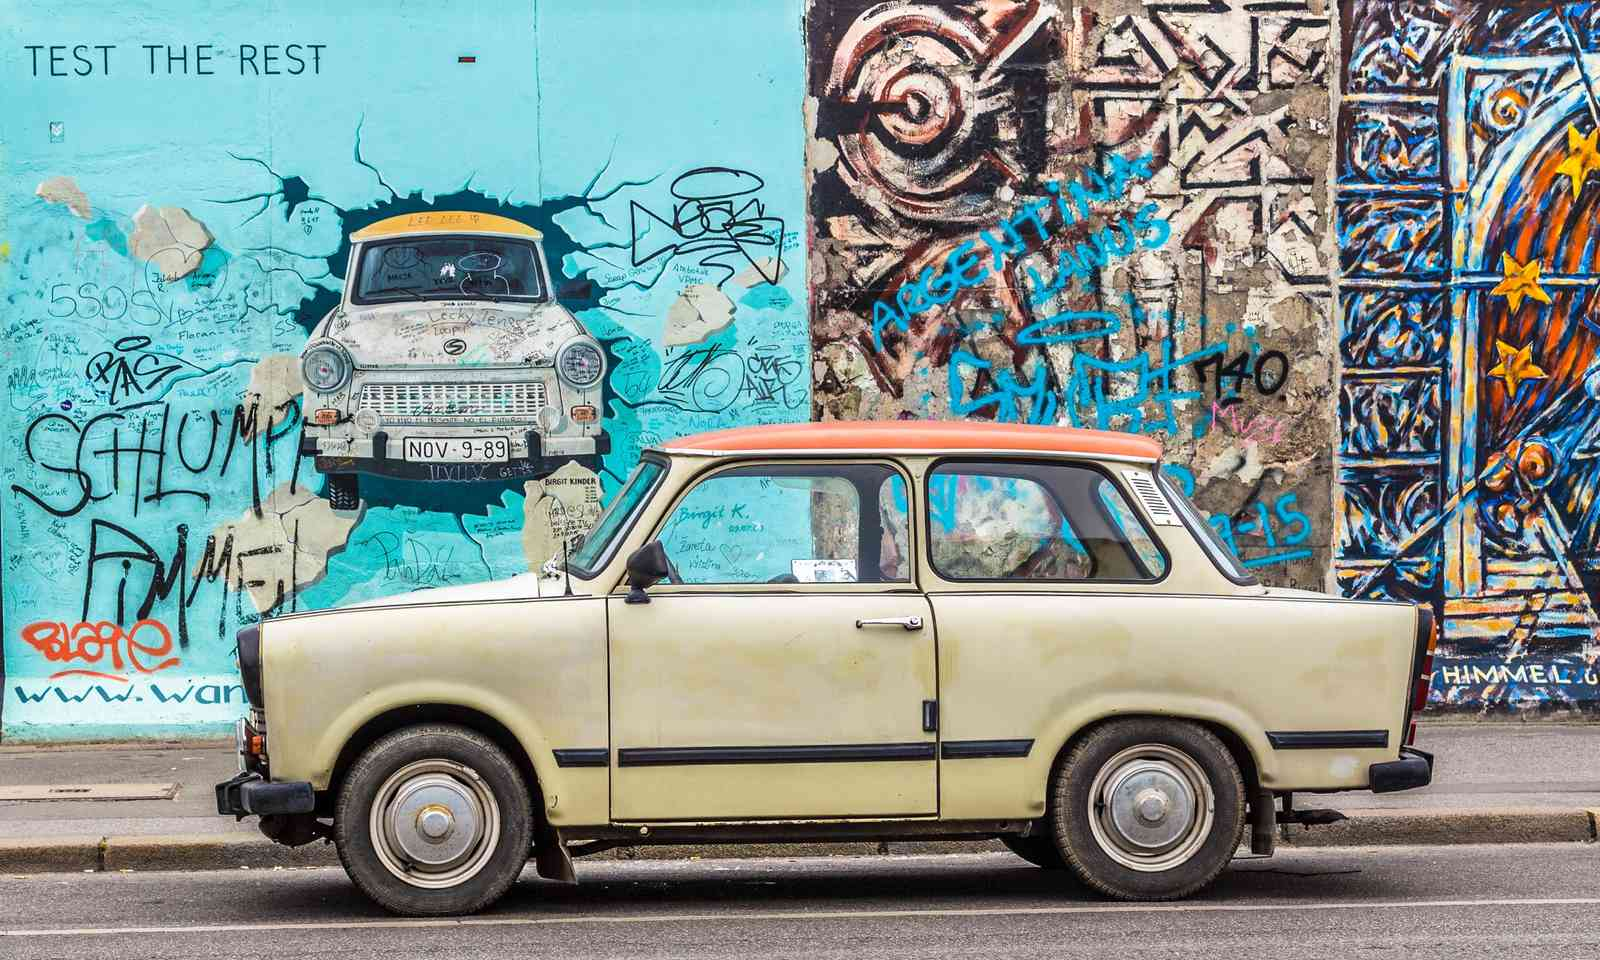 Trabant in front of the Berlin Wall (Shutterstock.com)